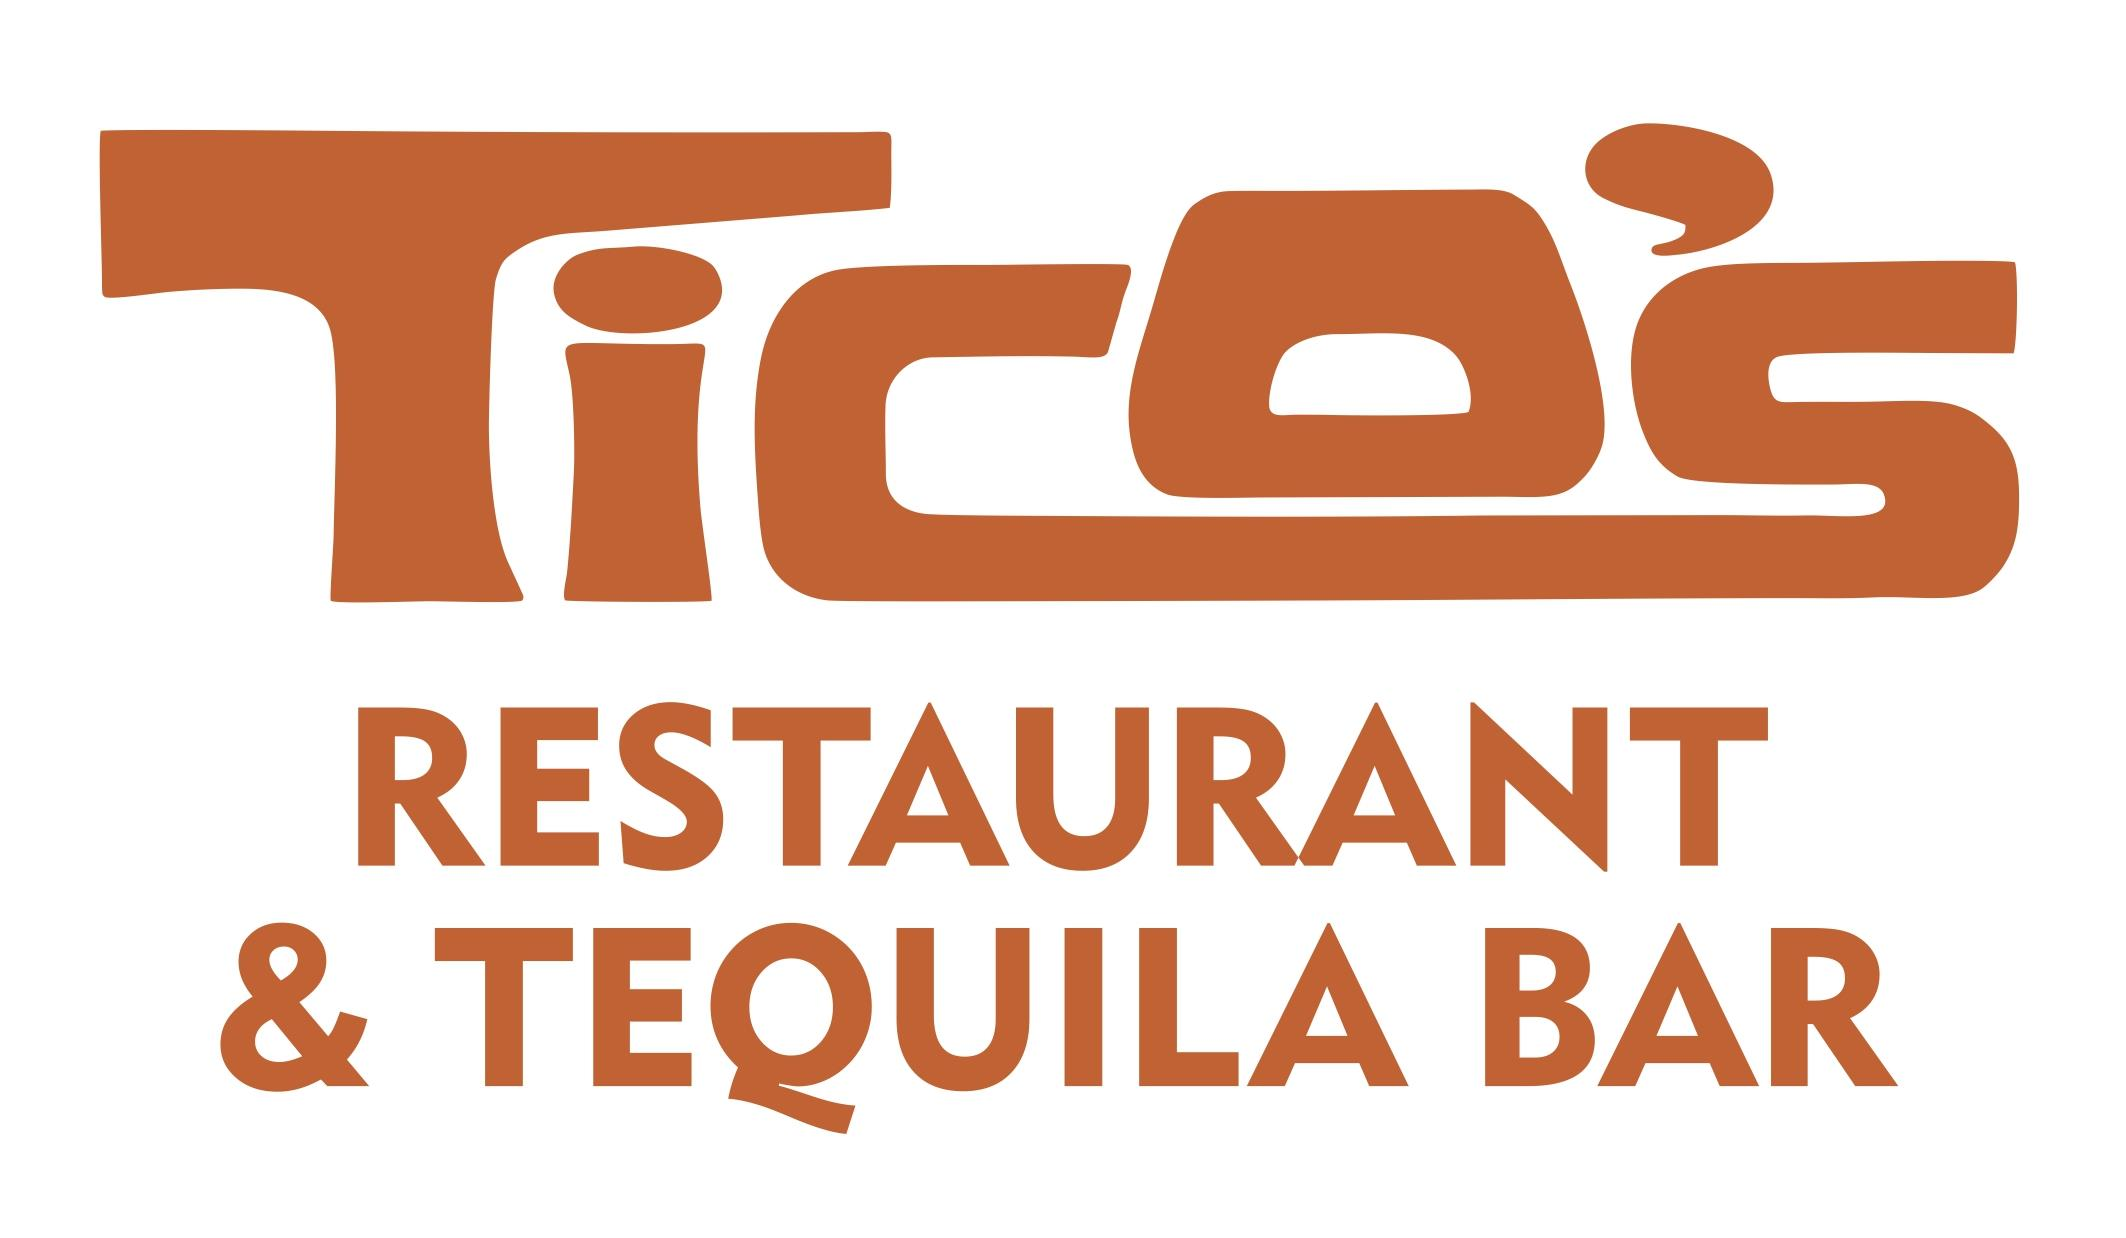 Tico's Restaurant and Tequila Bar